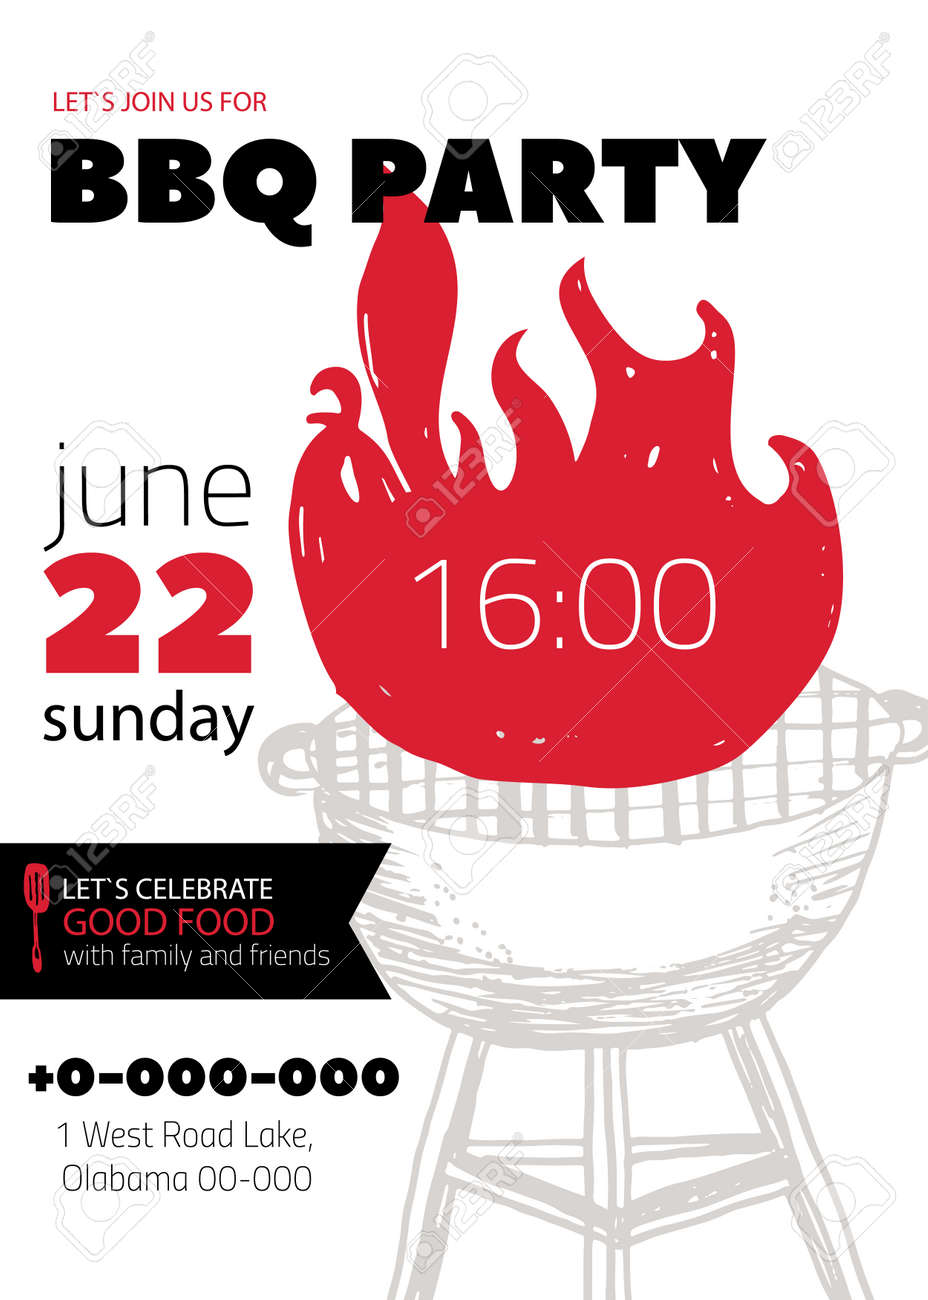 Grunge bbq party invitation template for posters flyers barbeque grunge bbq party invitation template for posters flyers barbeque grill manu on white background stopboris Image collections